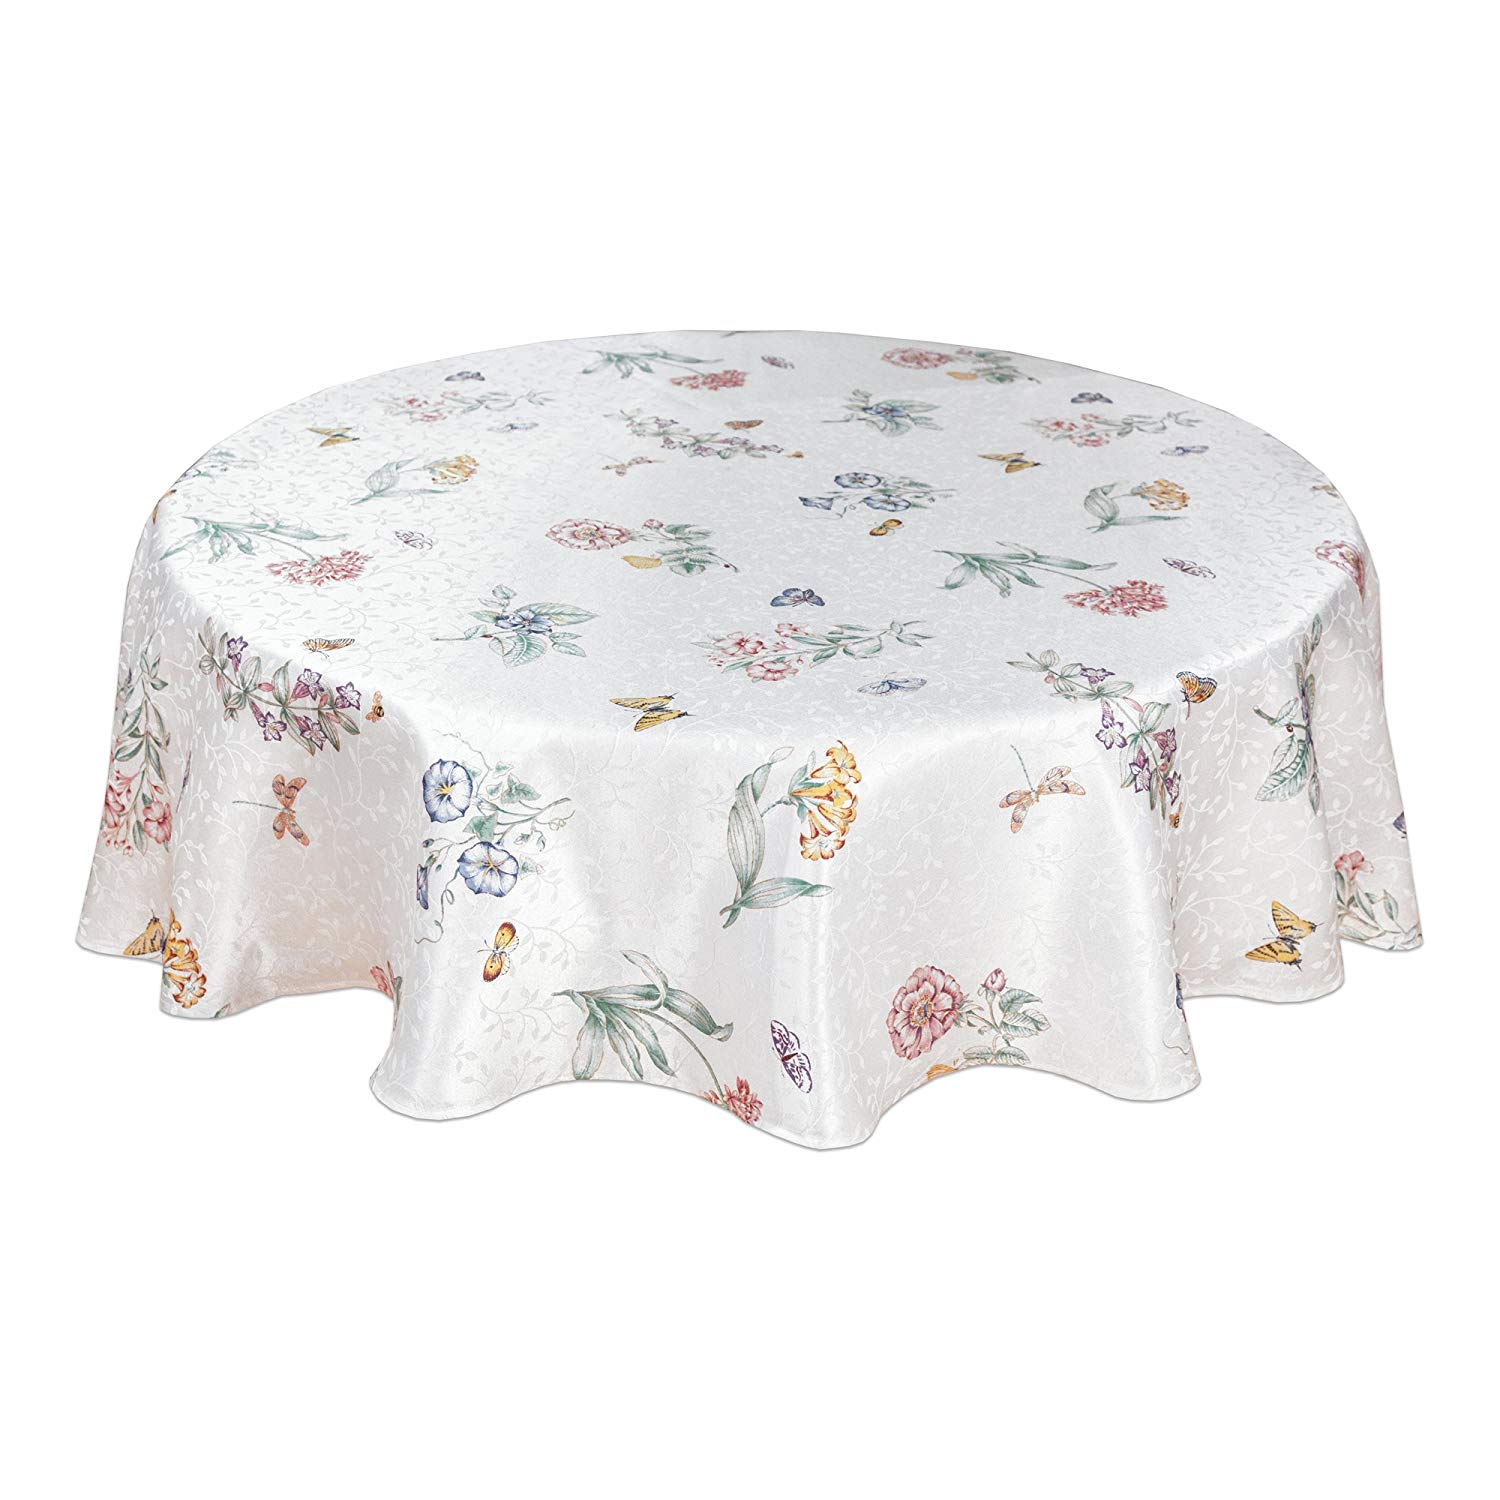 lenox butterfly meadow inch round tablecloth home accent kitchen farmhouse door small porch table battery standard lamp hutch designer end tables unwanted furniture very narrow